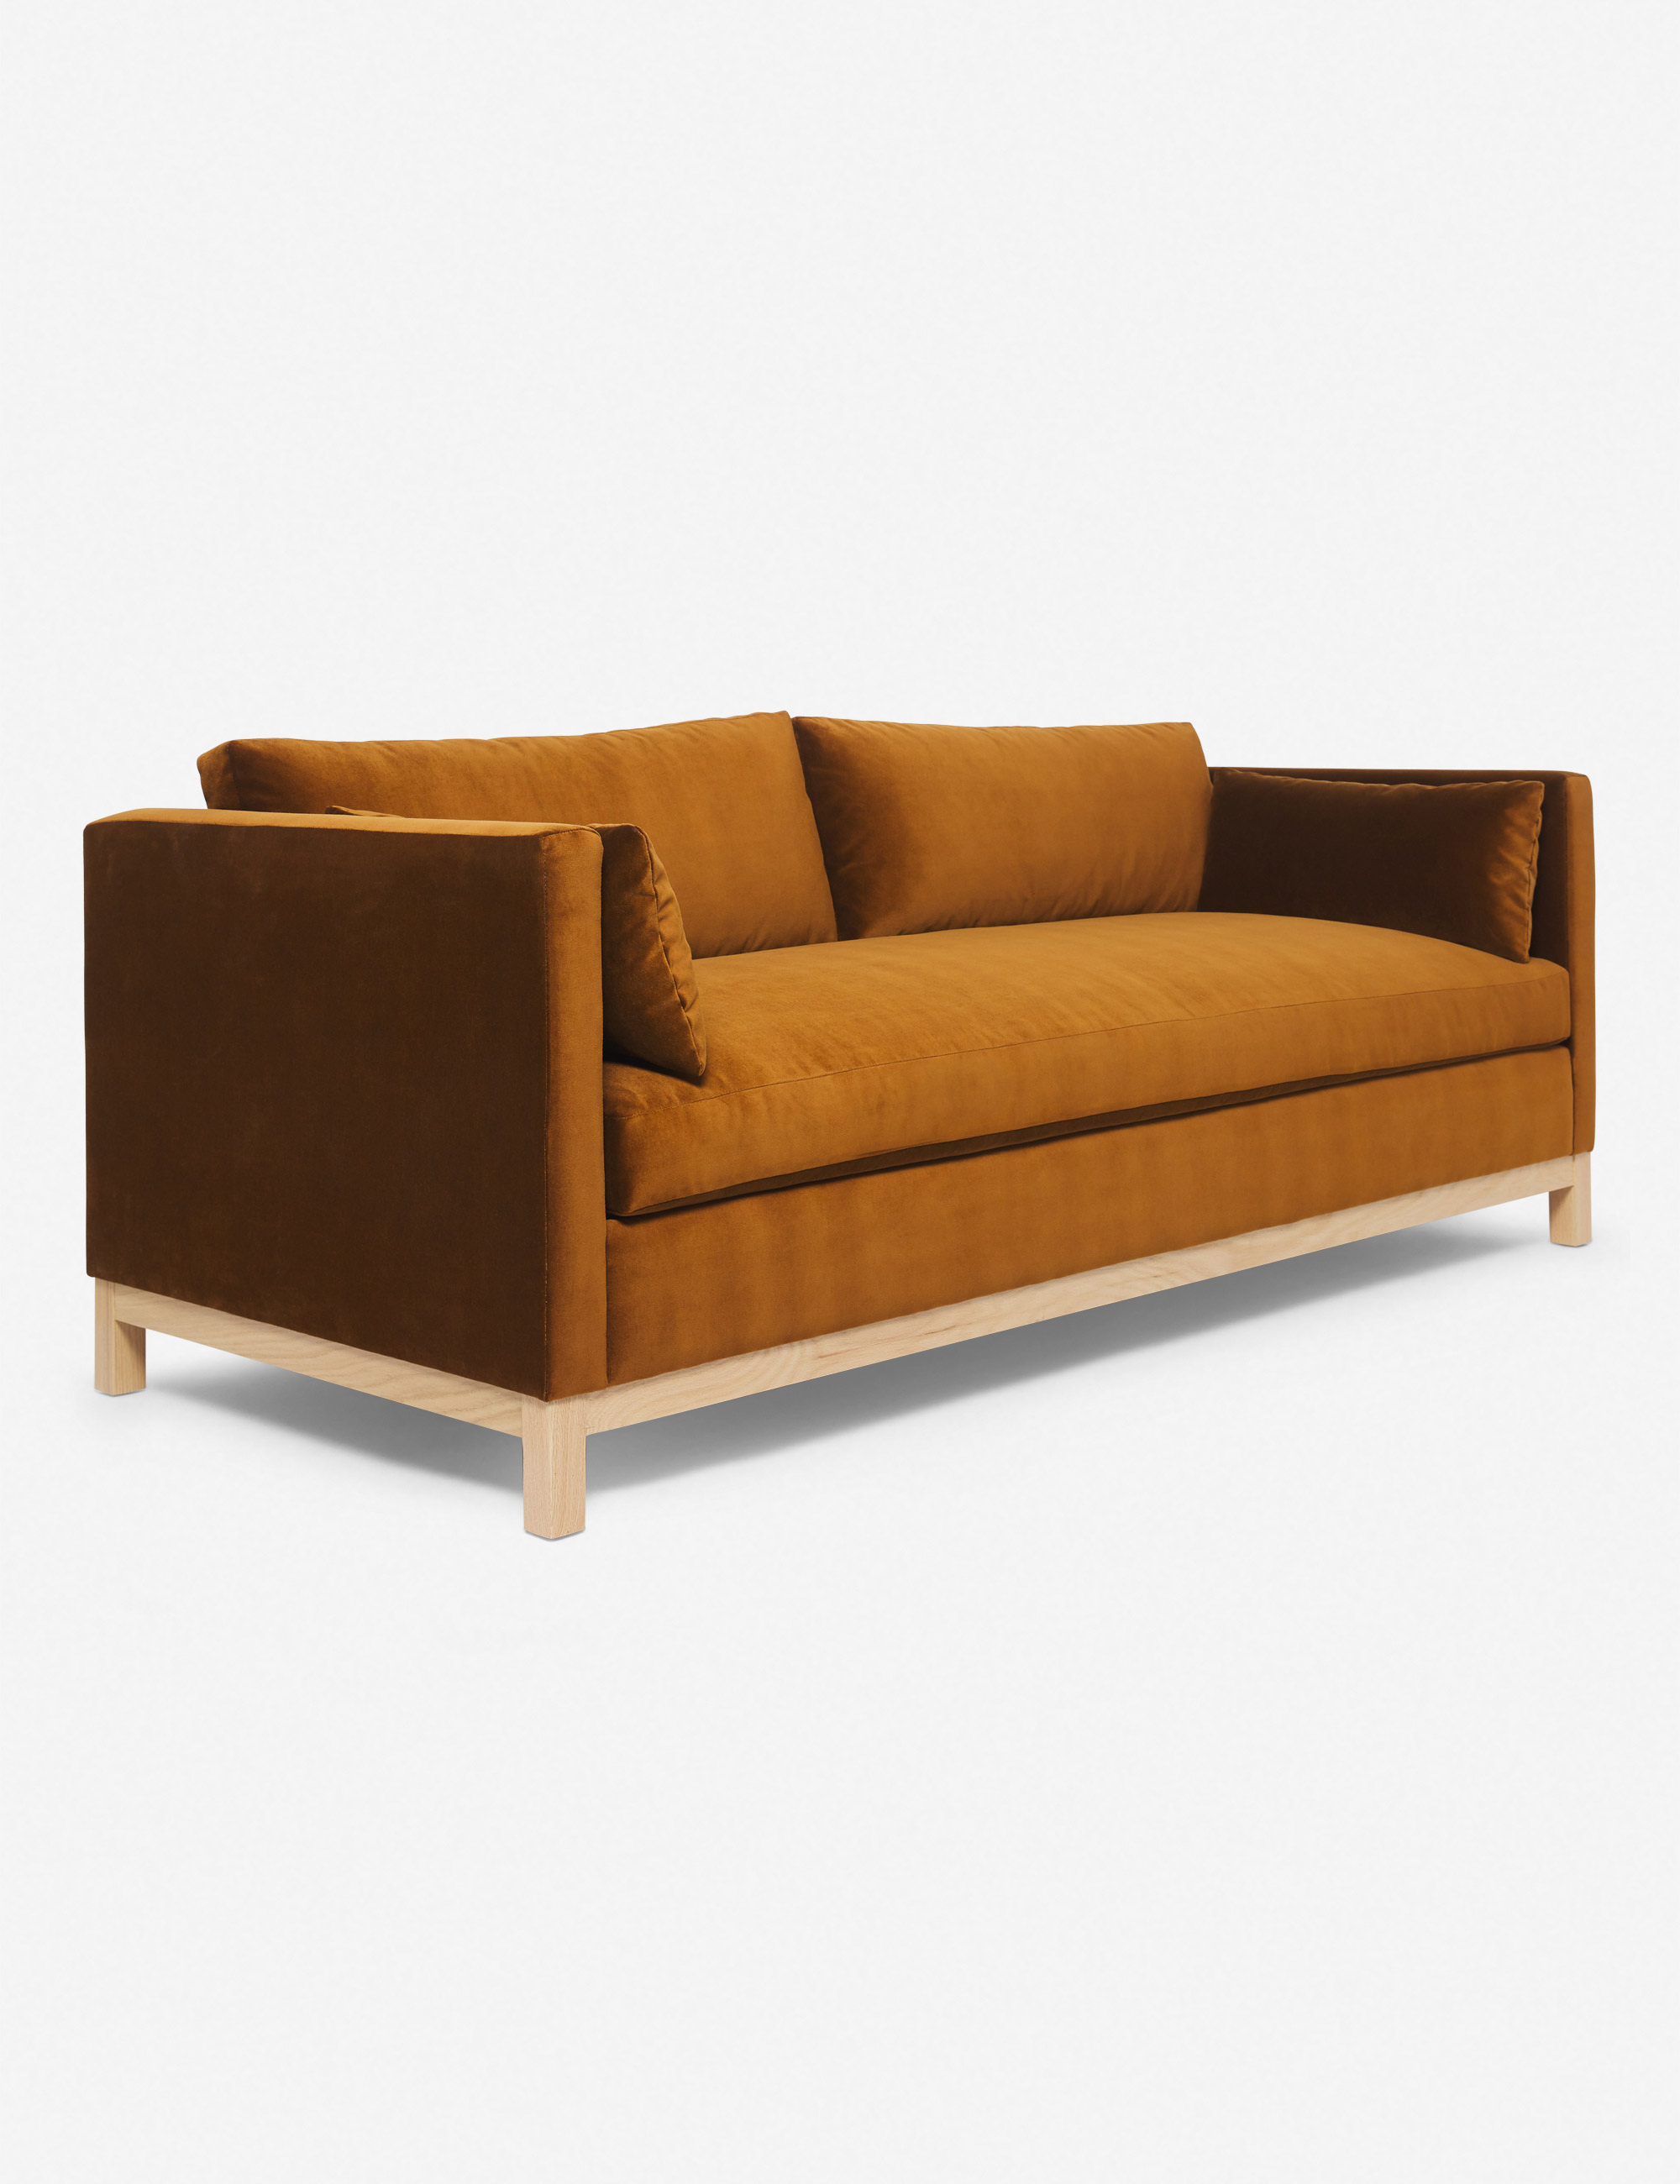 GINNY_MACDONALD_Hollingworth Sofa-Velvet-Cognac-5